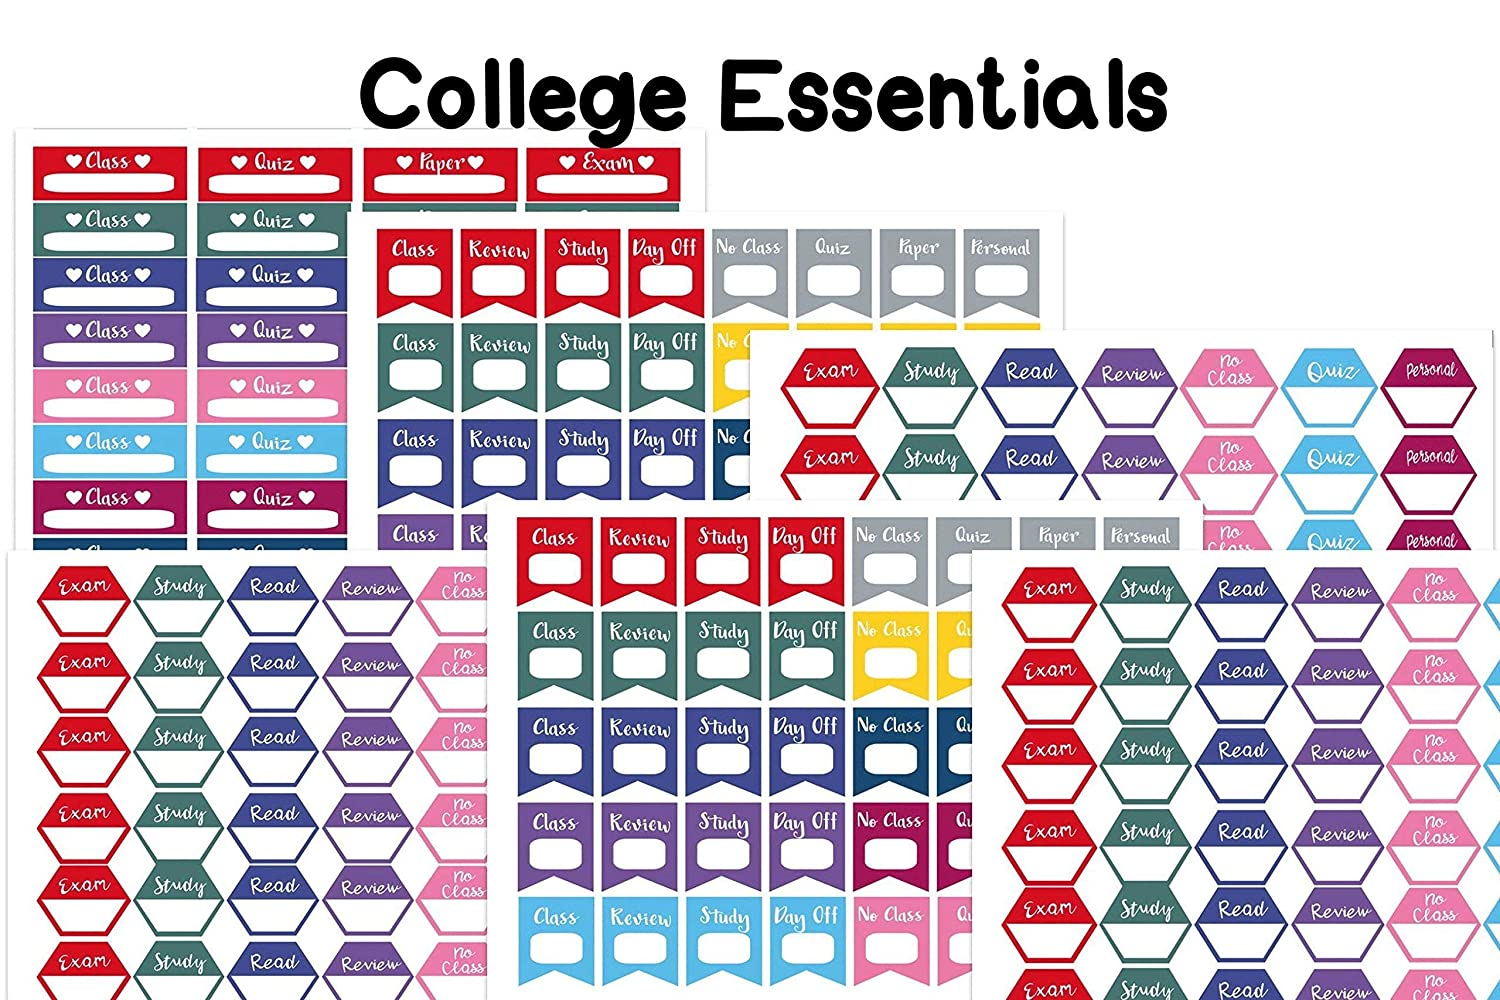 College Essential planner//organizer stickers Sized to fit most planners. 228 stickers on 6 sheets on matte sticker paper